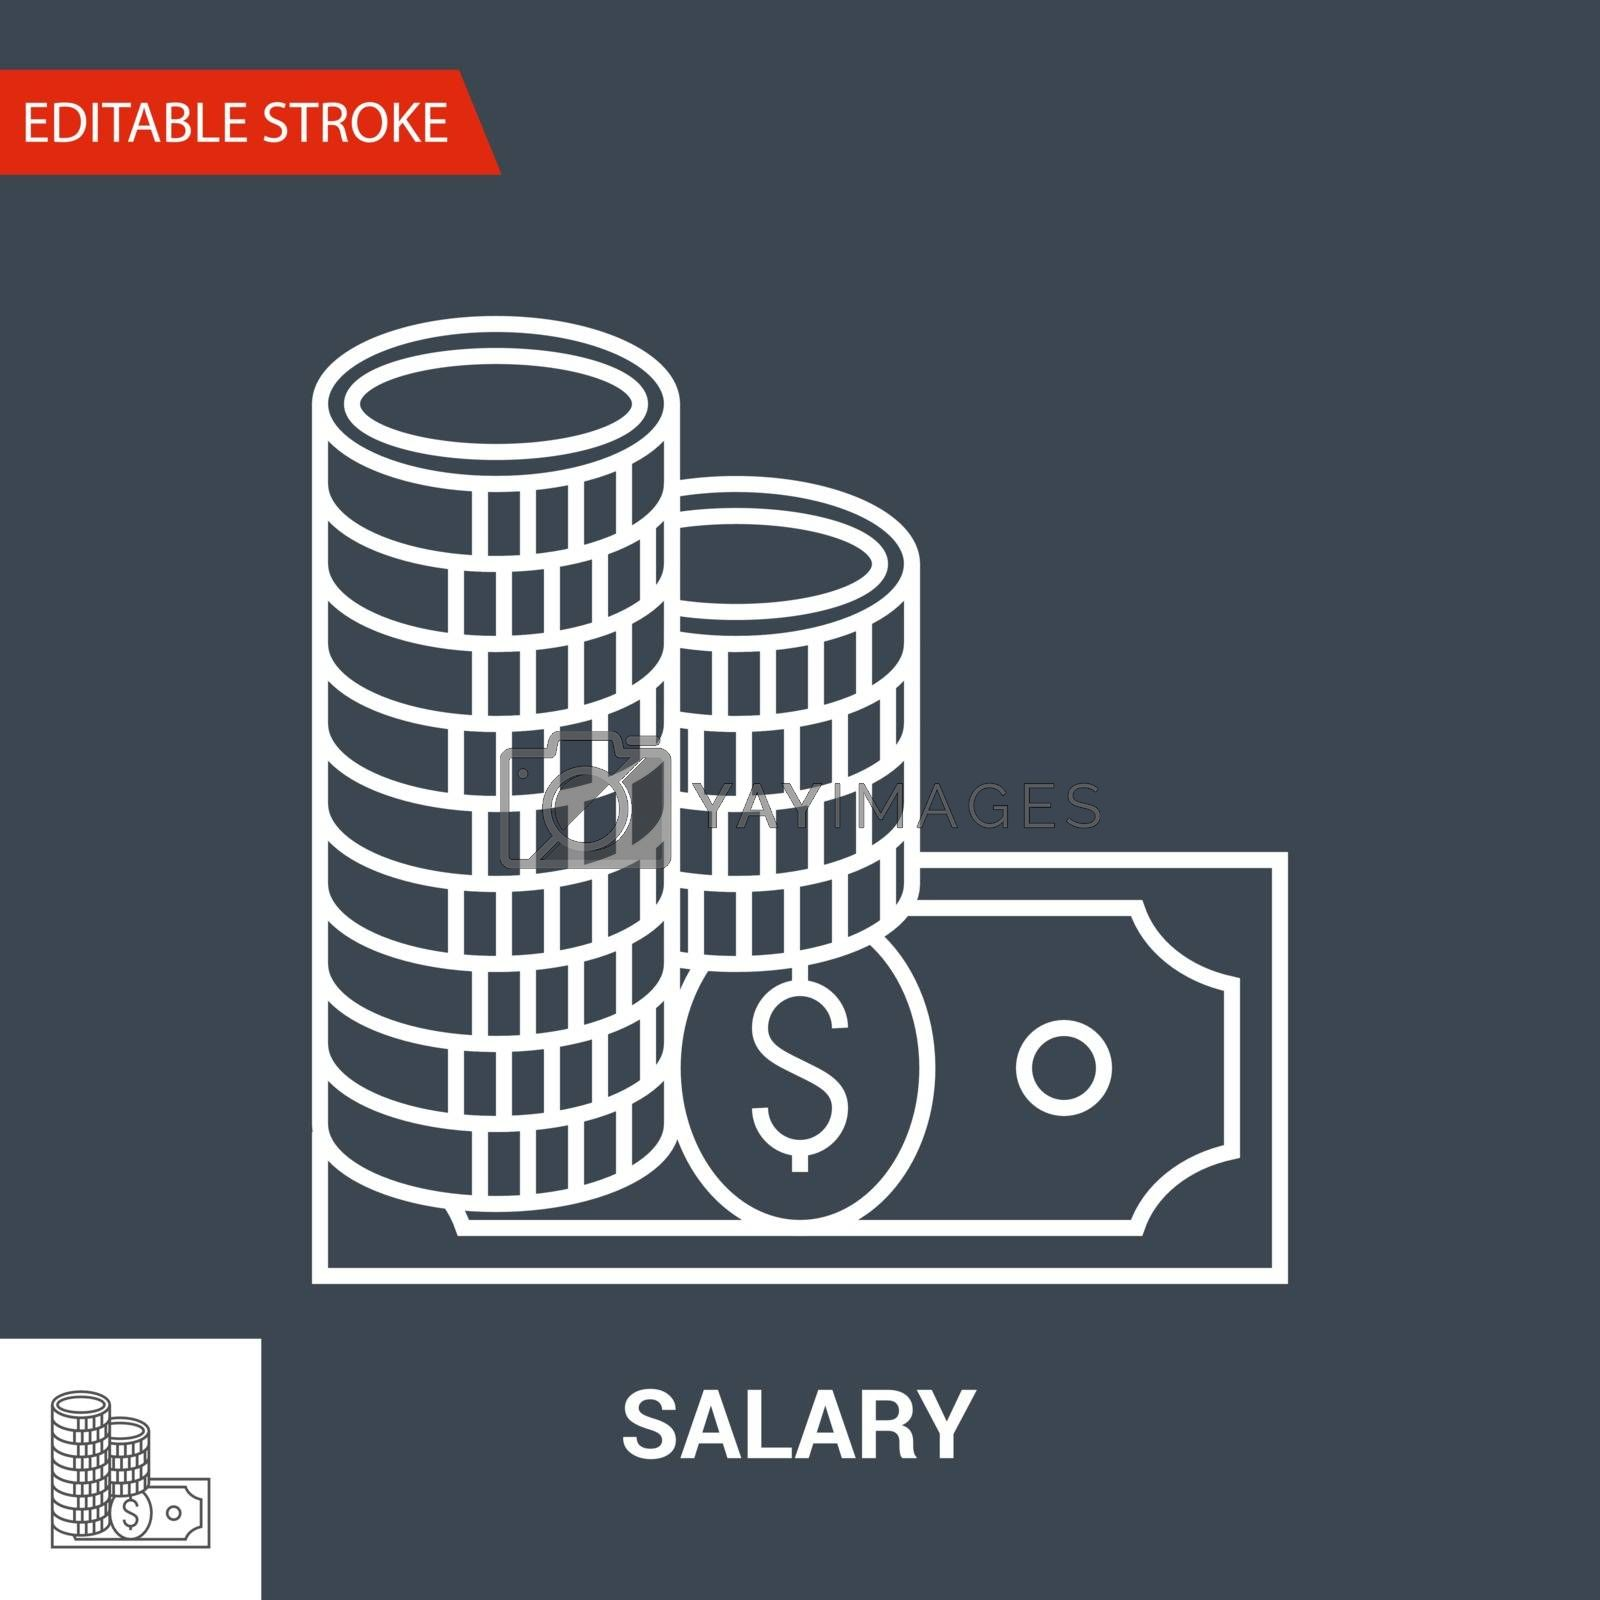 Salary Icon. Thin Line Vector Illustration - Adjust stroke weight - Expand to any Size - Easy Change Colour - Editable Stroke